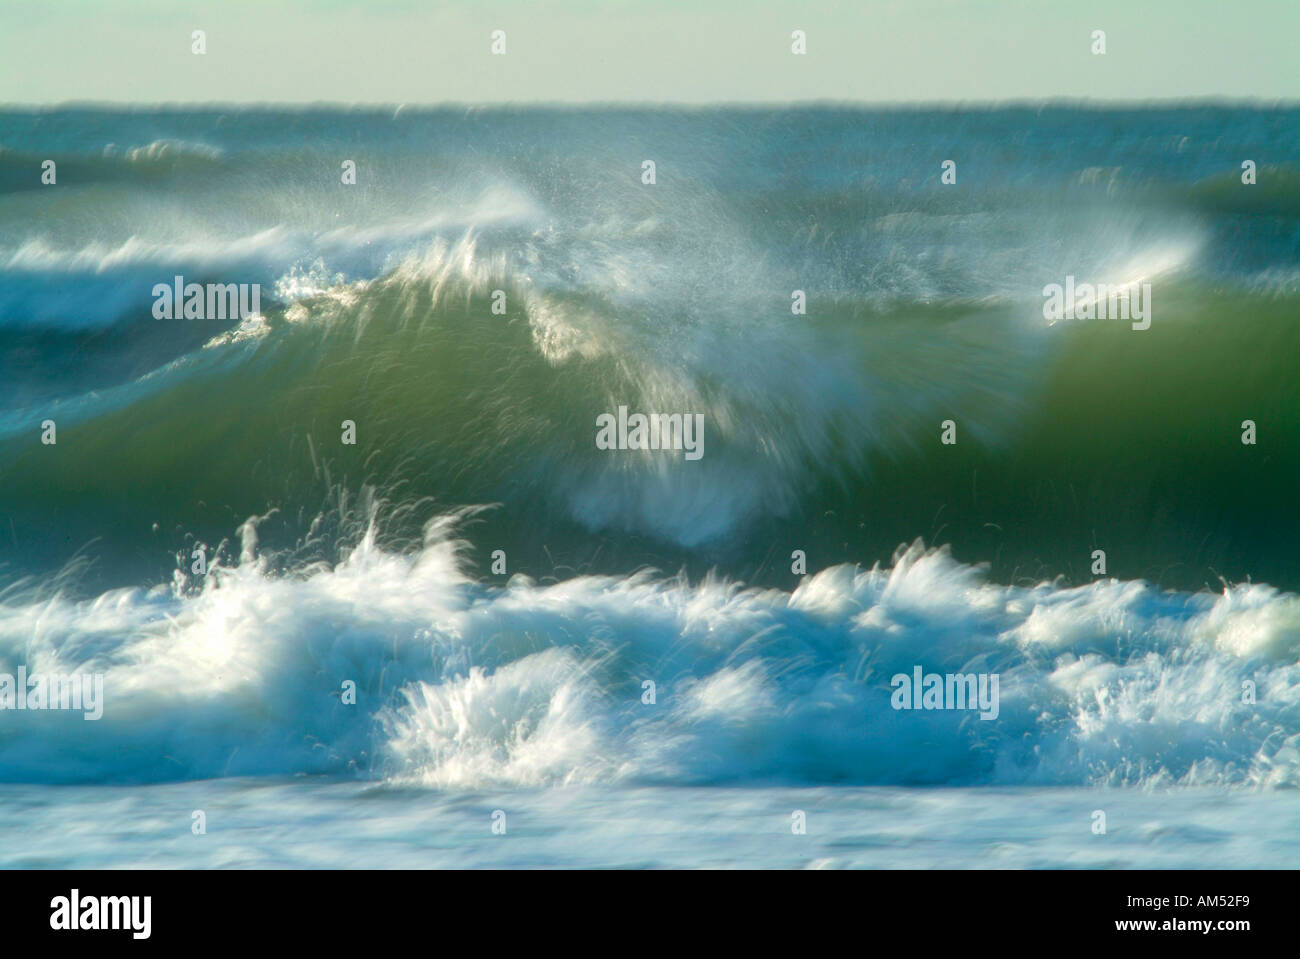 ocean surf breaking on a beach with motion blurs - Stock Image